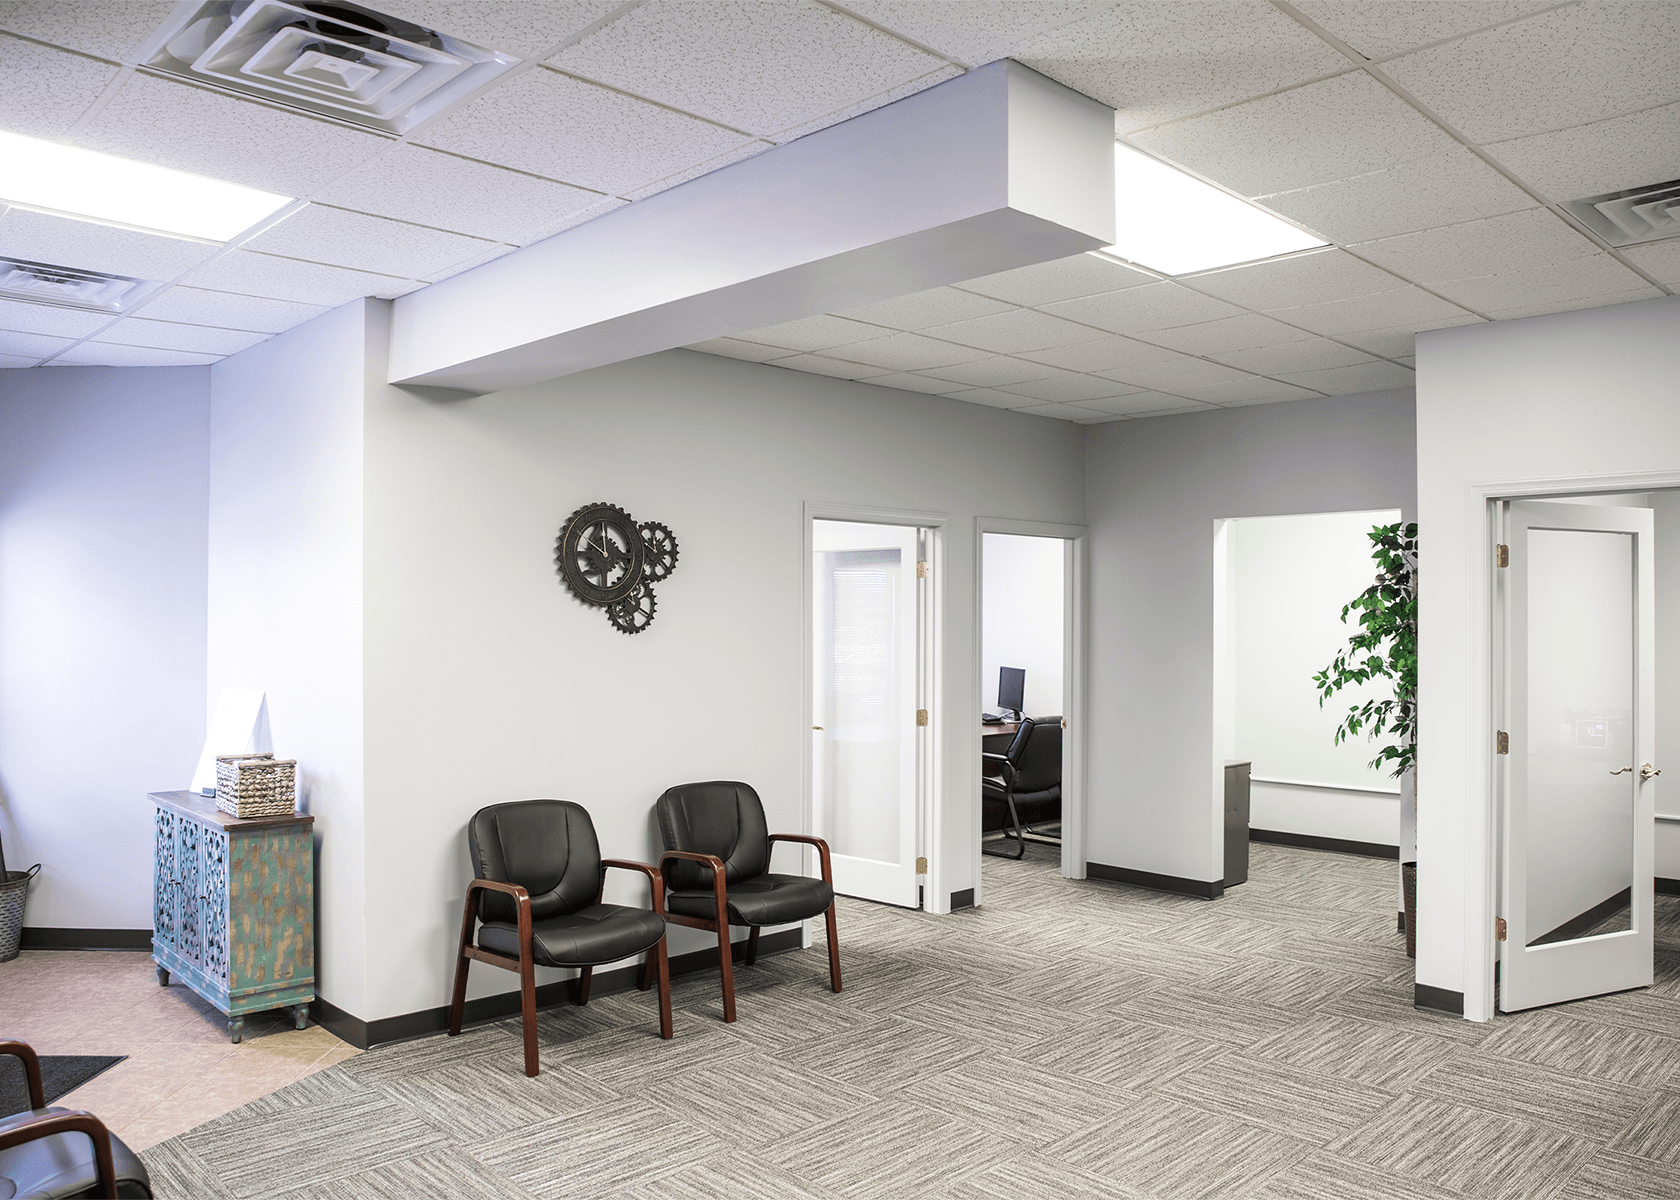 Office suite with bright white walls, light gray carpet, and waiting chairs